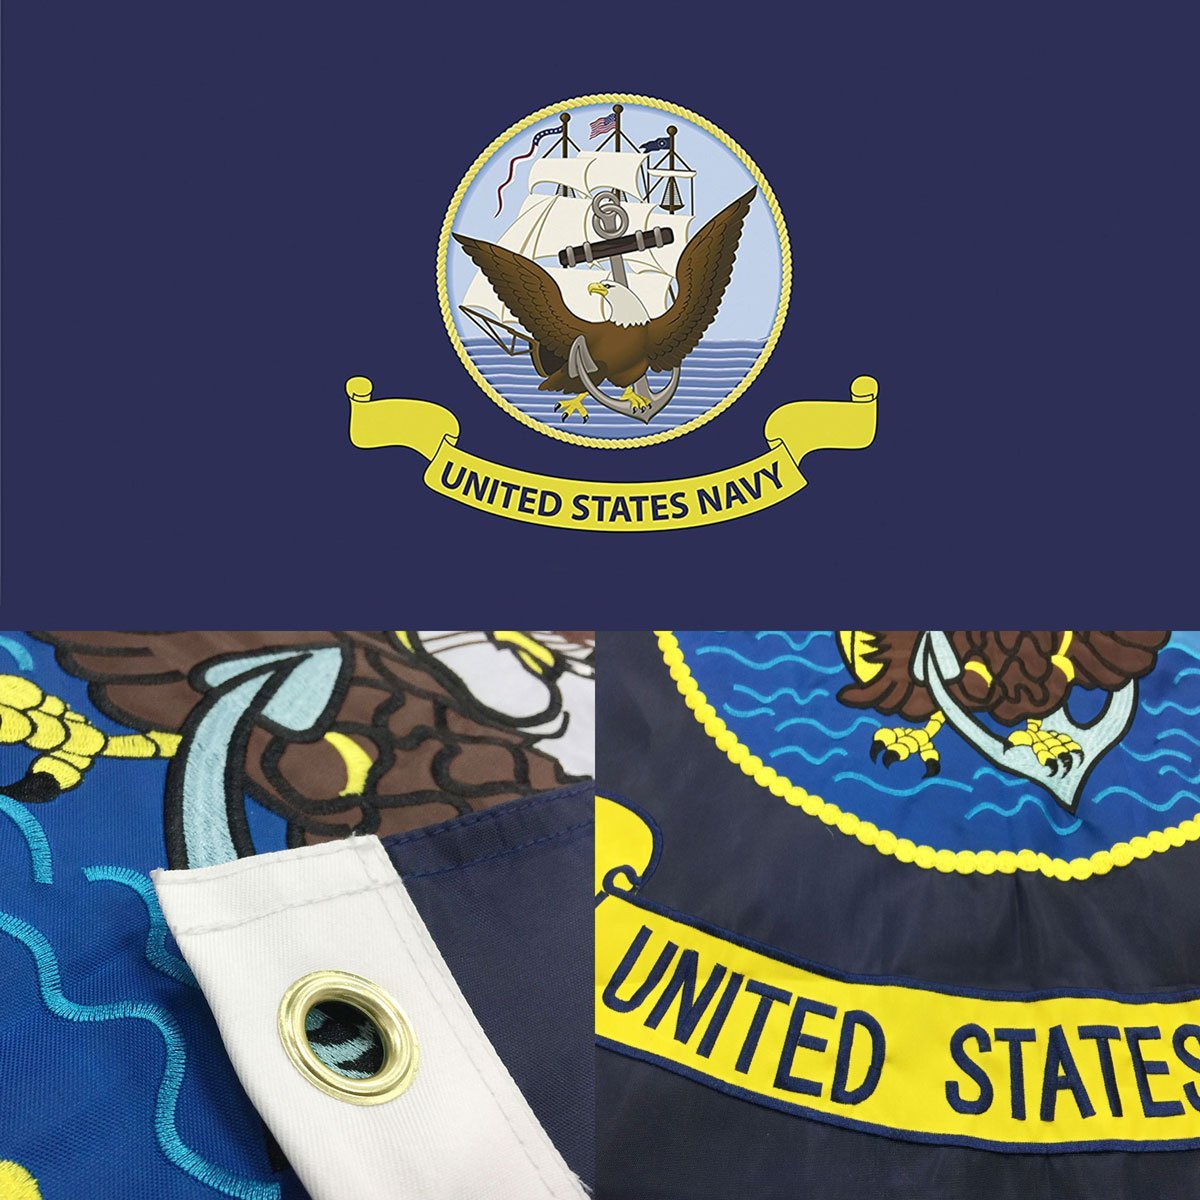 b48a5f042a4e Get Quotations · US Navy Flag 3x5 Ft - Double Sided Embroidered